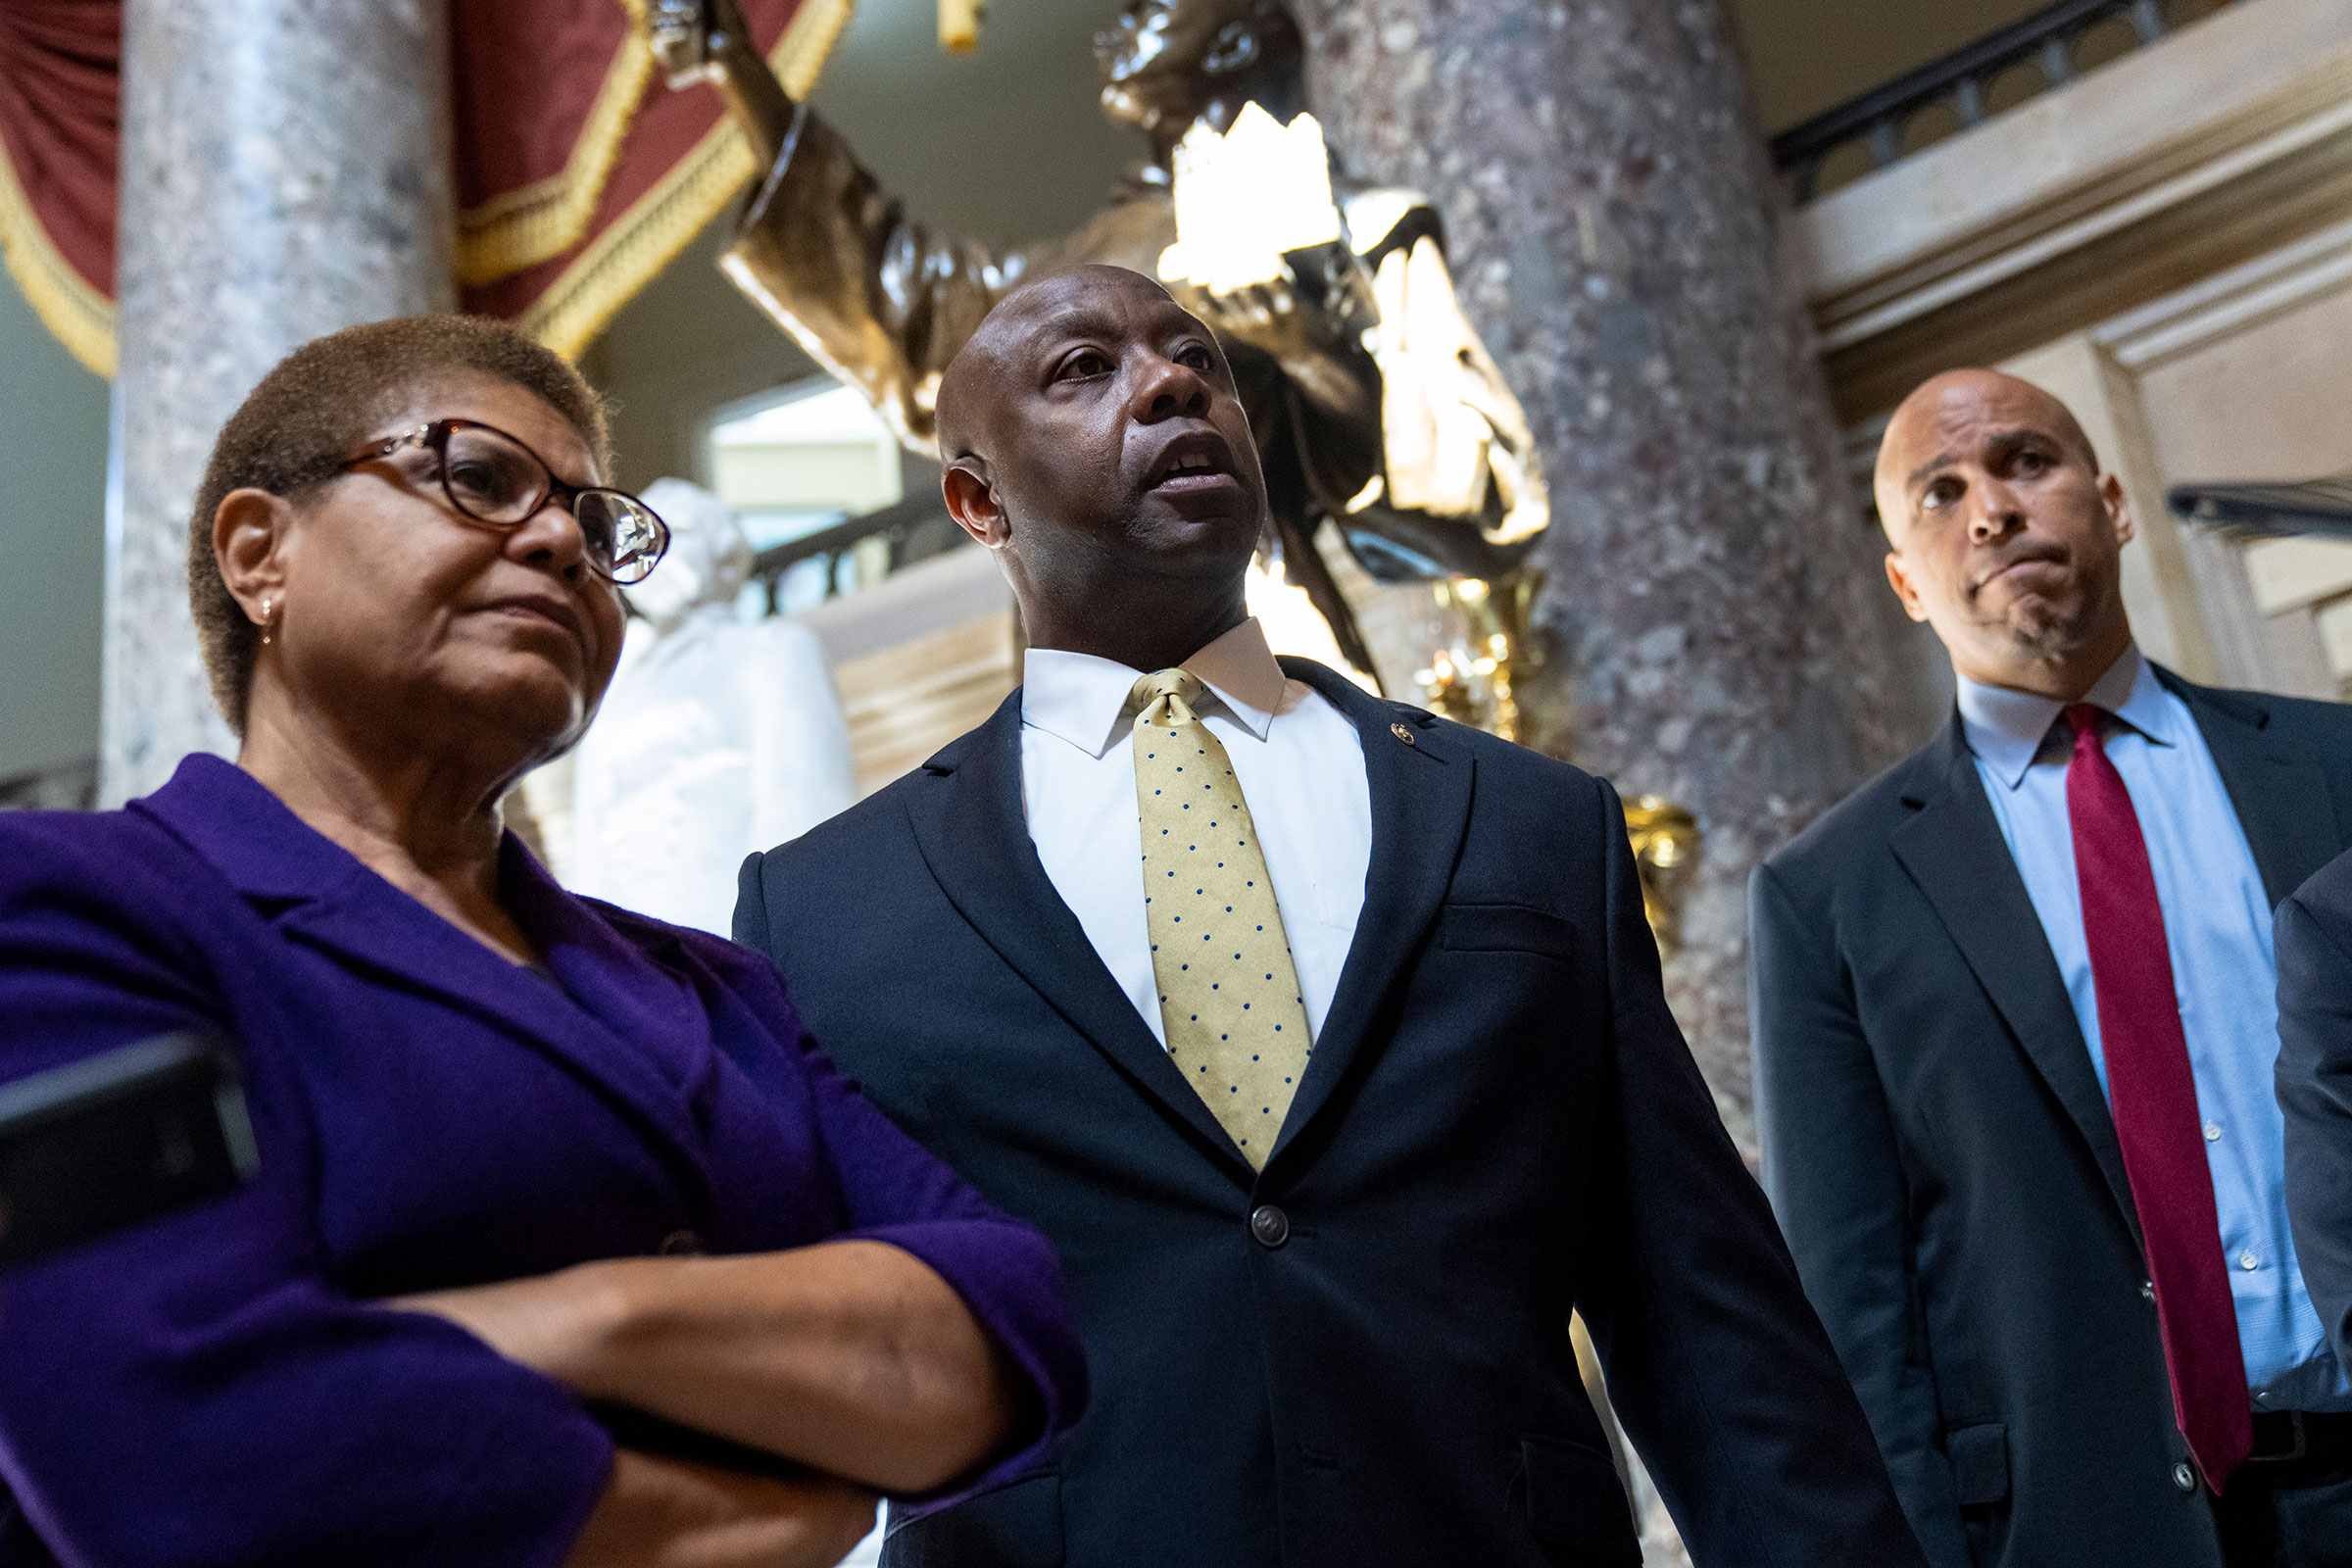 Rep. Karen Bass, Sen. Tim Scott, and Sen. Cory Booker speak briefly to reporters as they exit the office of Rep. James Clyburn following a meeting about police reform legislation on Capitol Hill on May 18, 2021.